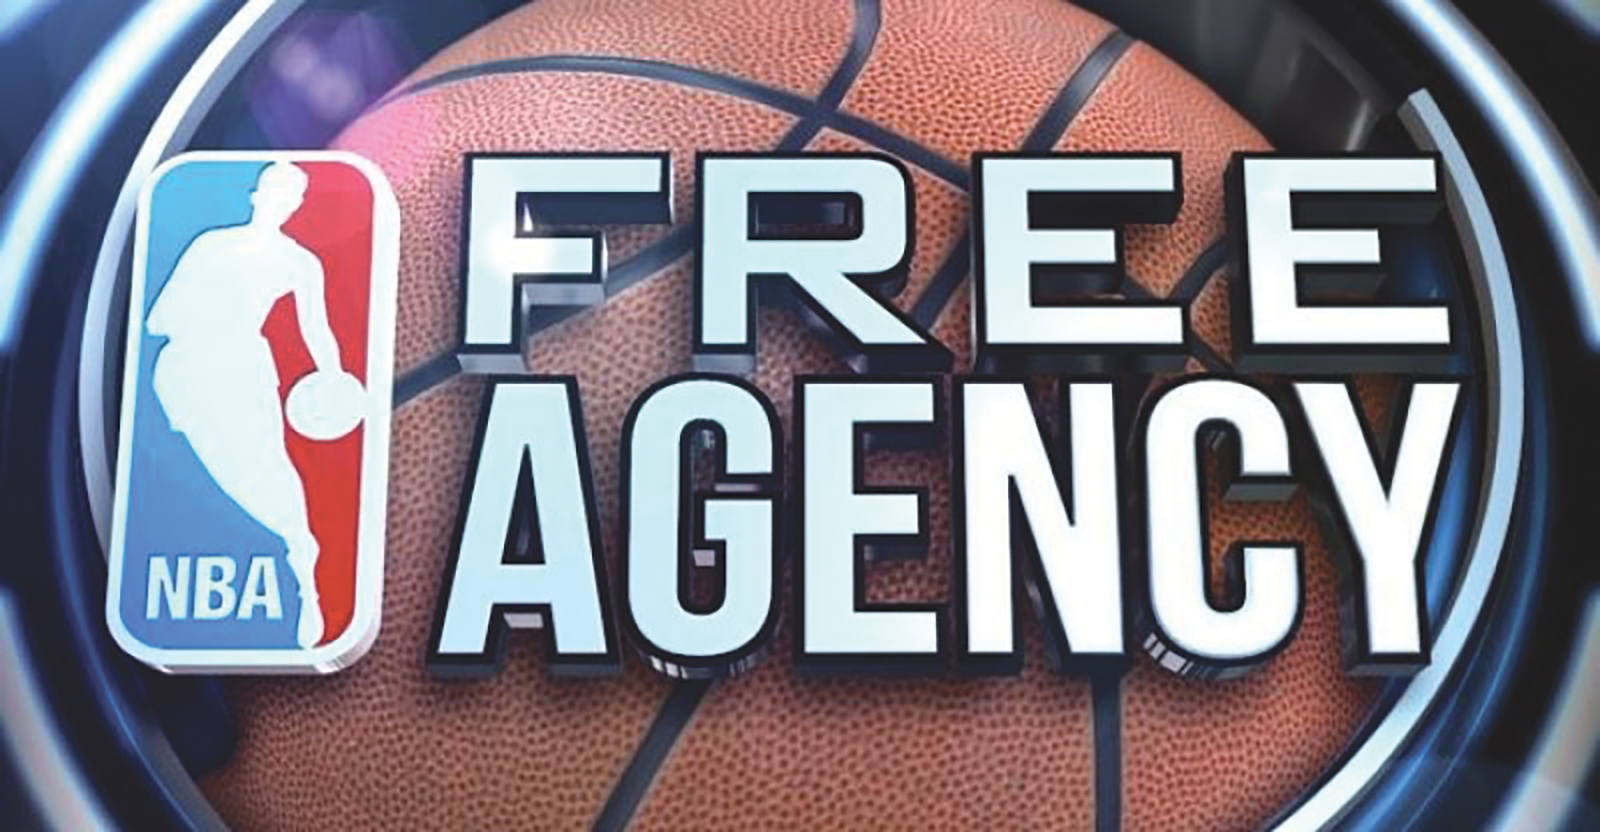 Over $500 Million dollars have been allocated to NBA Salaries thus far in the NBA's Free Agency period (photo: shawsports.net)